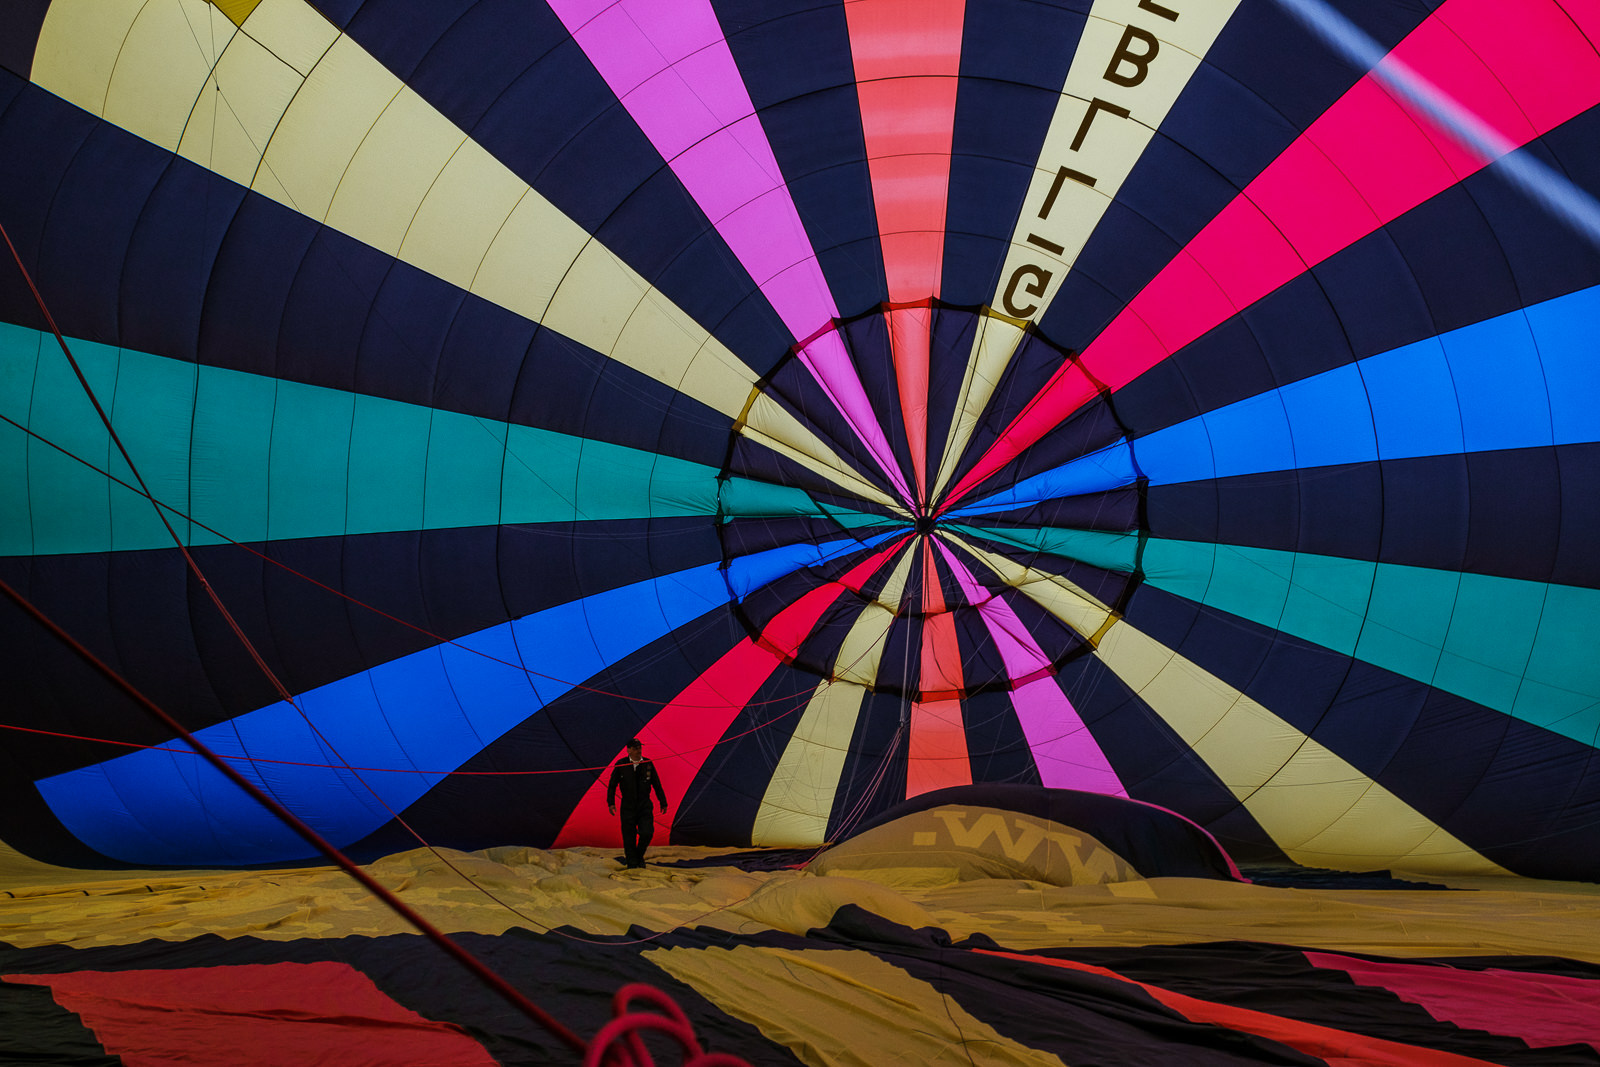 Pilot checks the air balloon. ISO800 16-55mm f5.6 1/60s